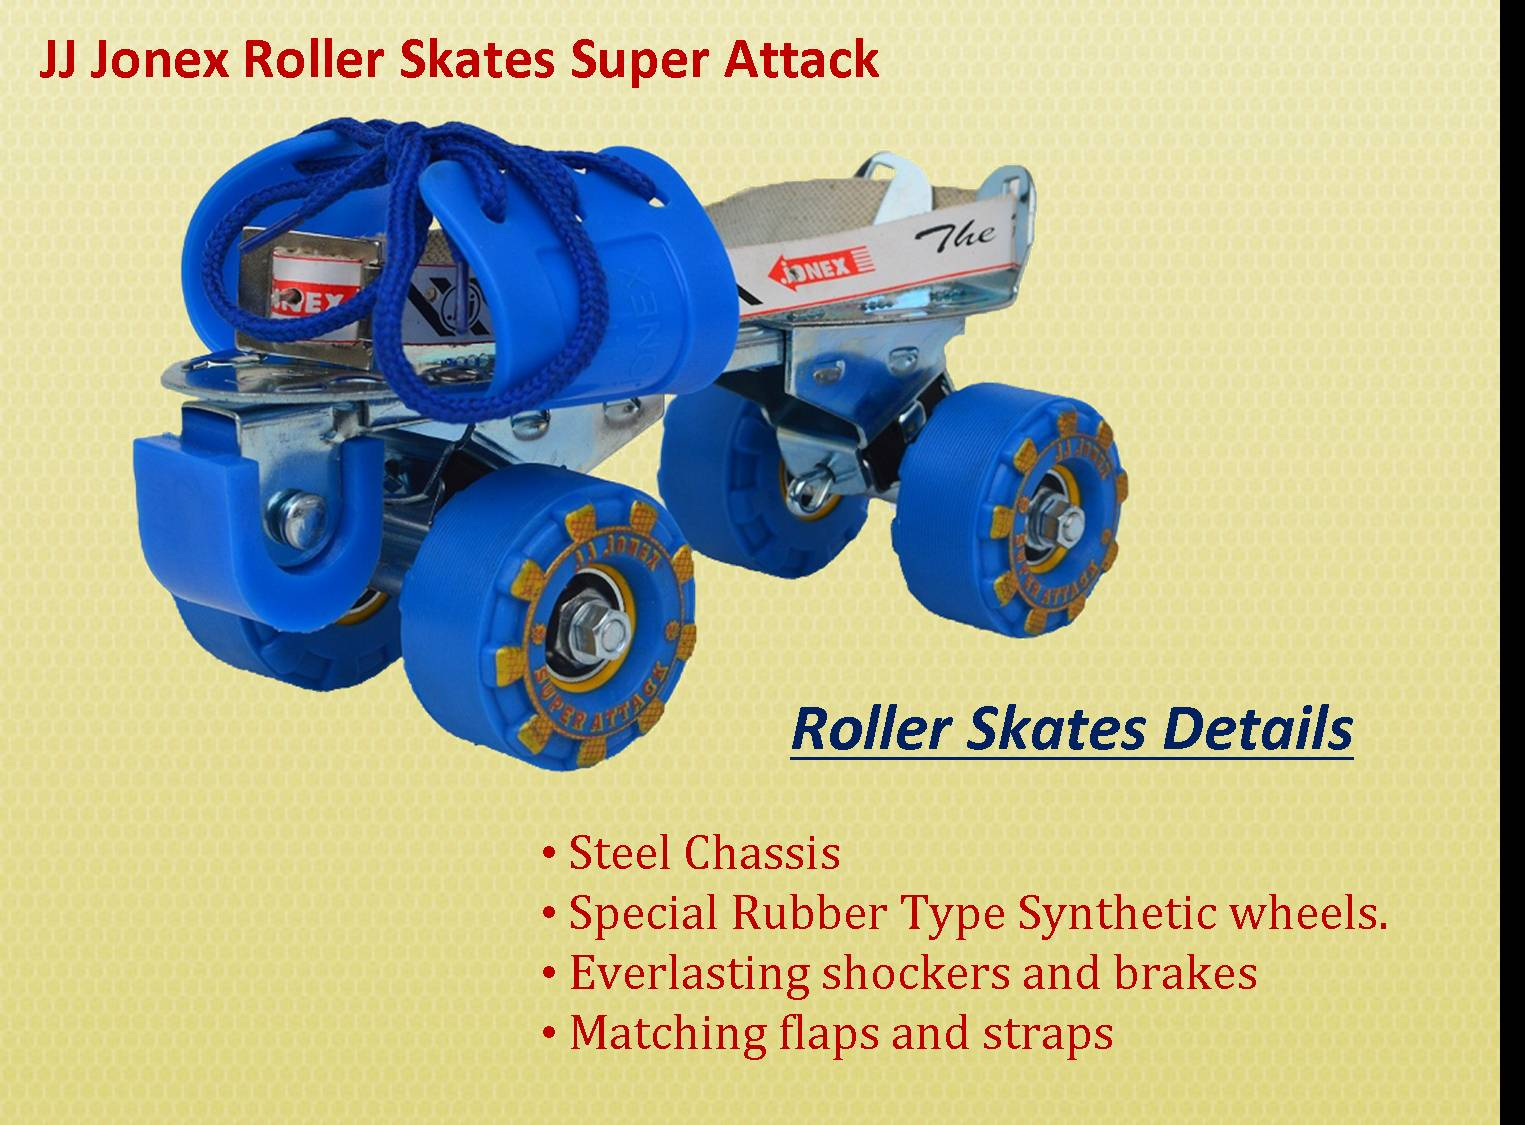 JJ Jonex Roller Skates Super Attack